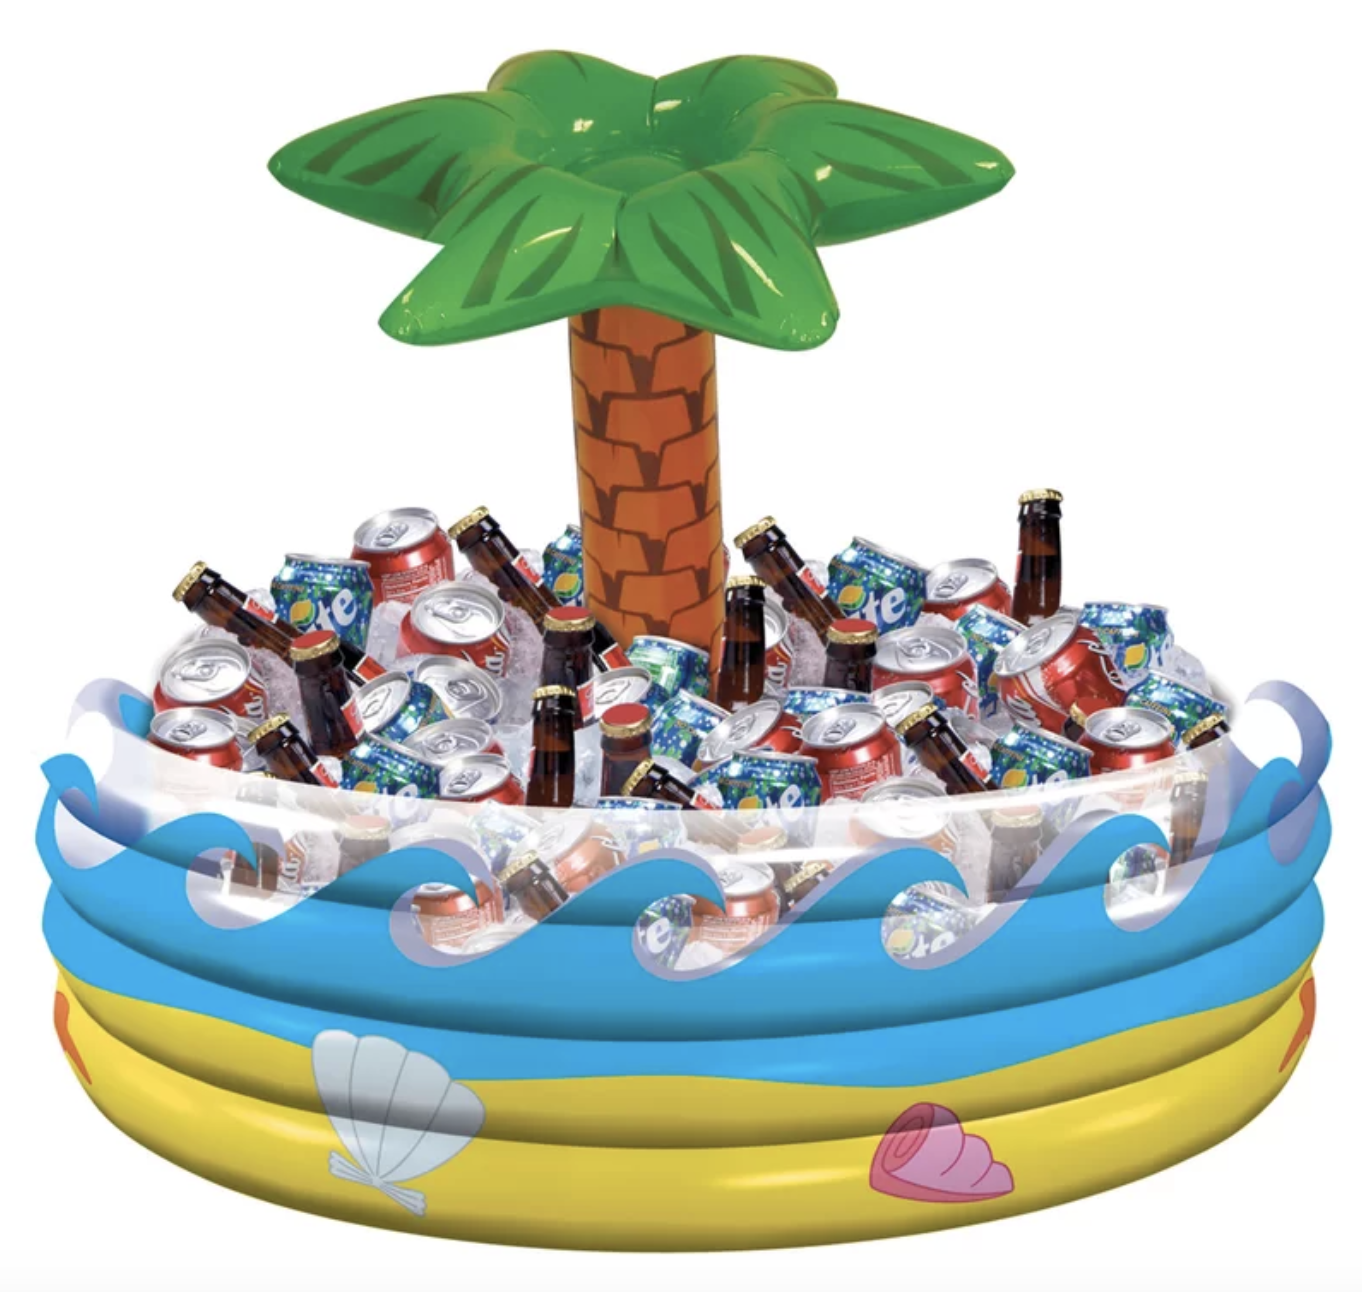 The inflatable beverage tub is a small blow-up pool with a palm tree in the middle